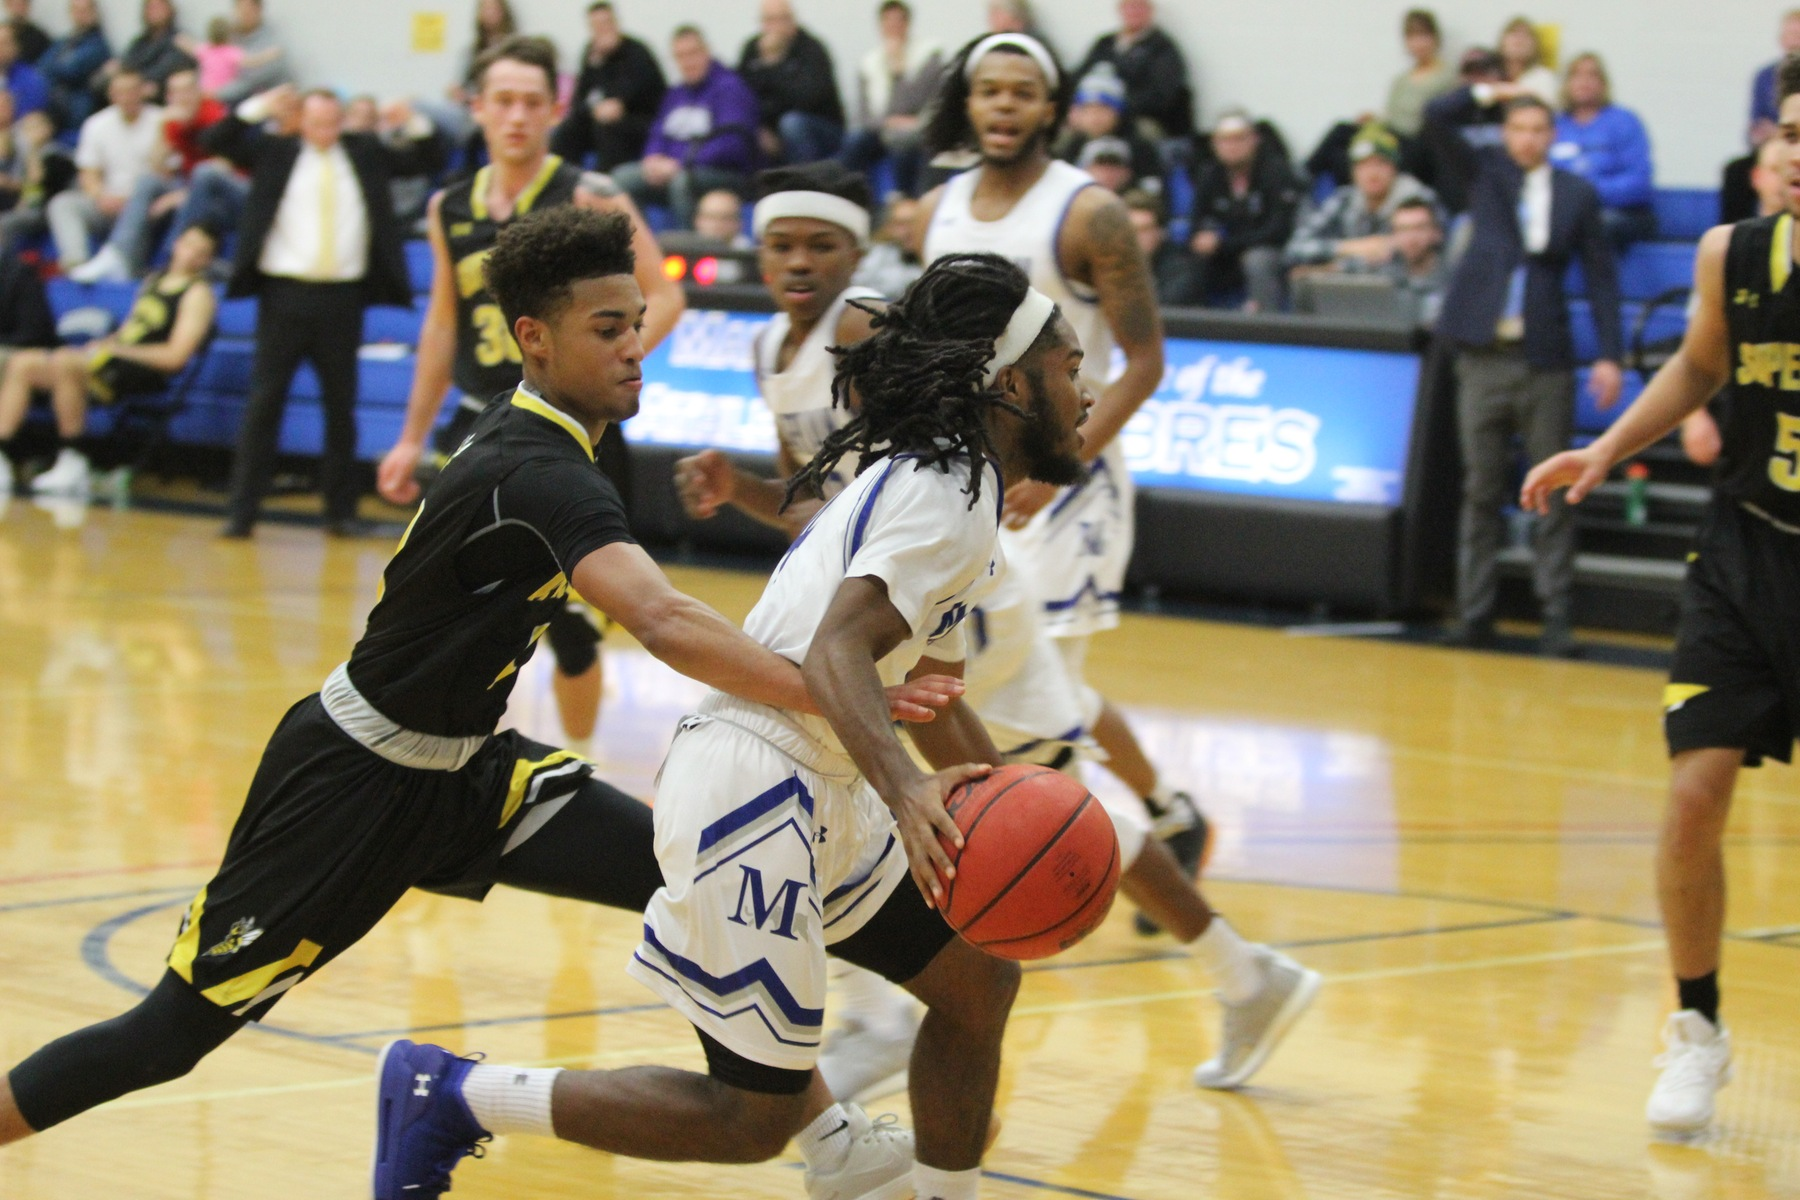 Tyrese Pinson drives past a defender.